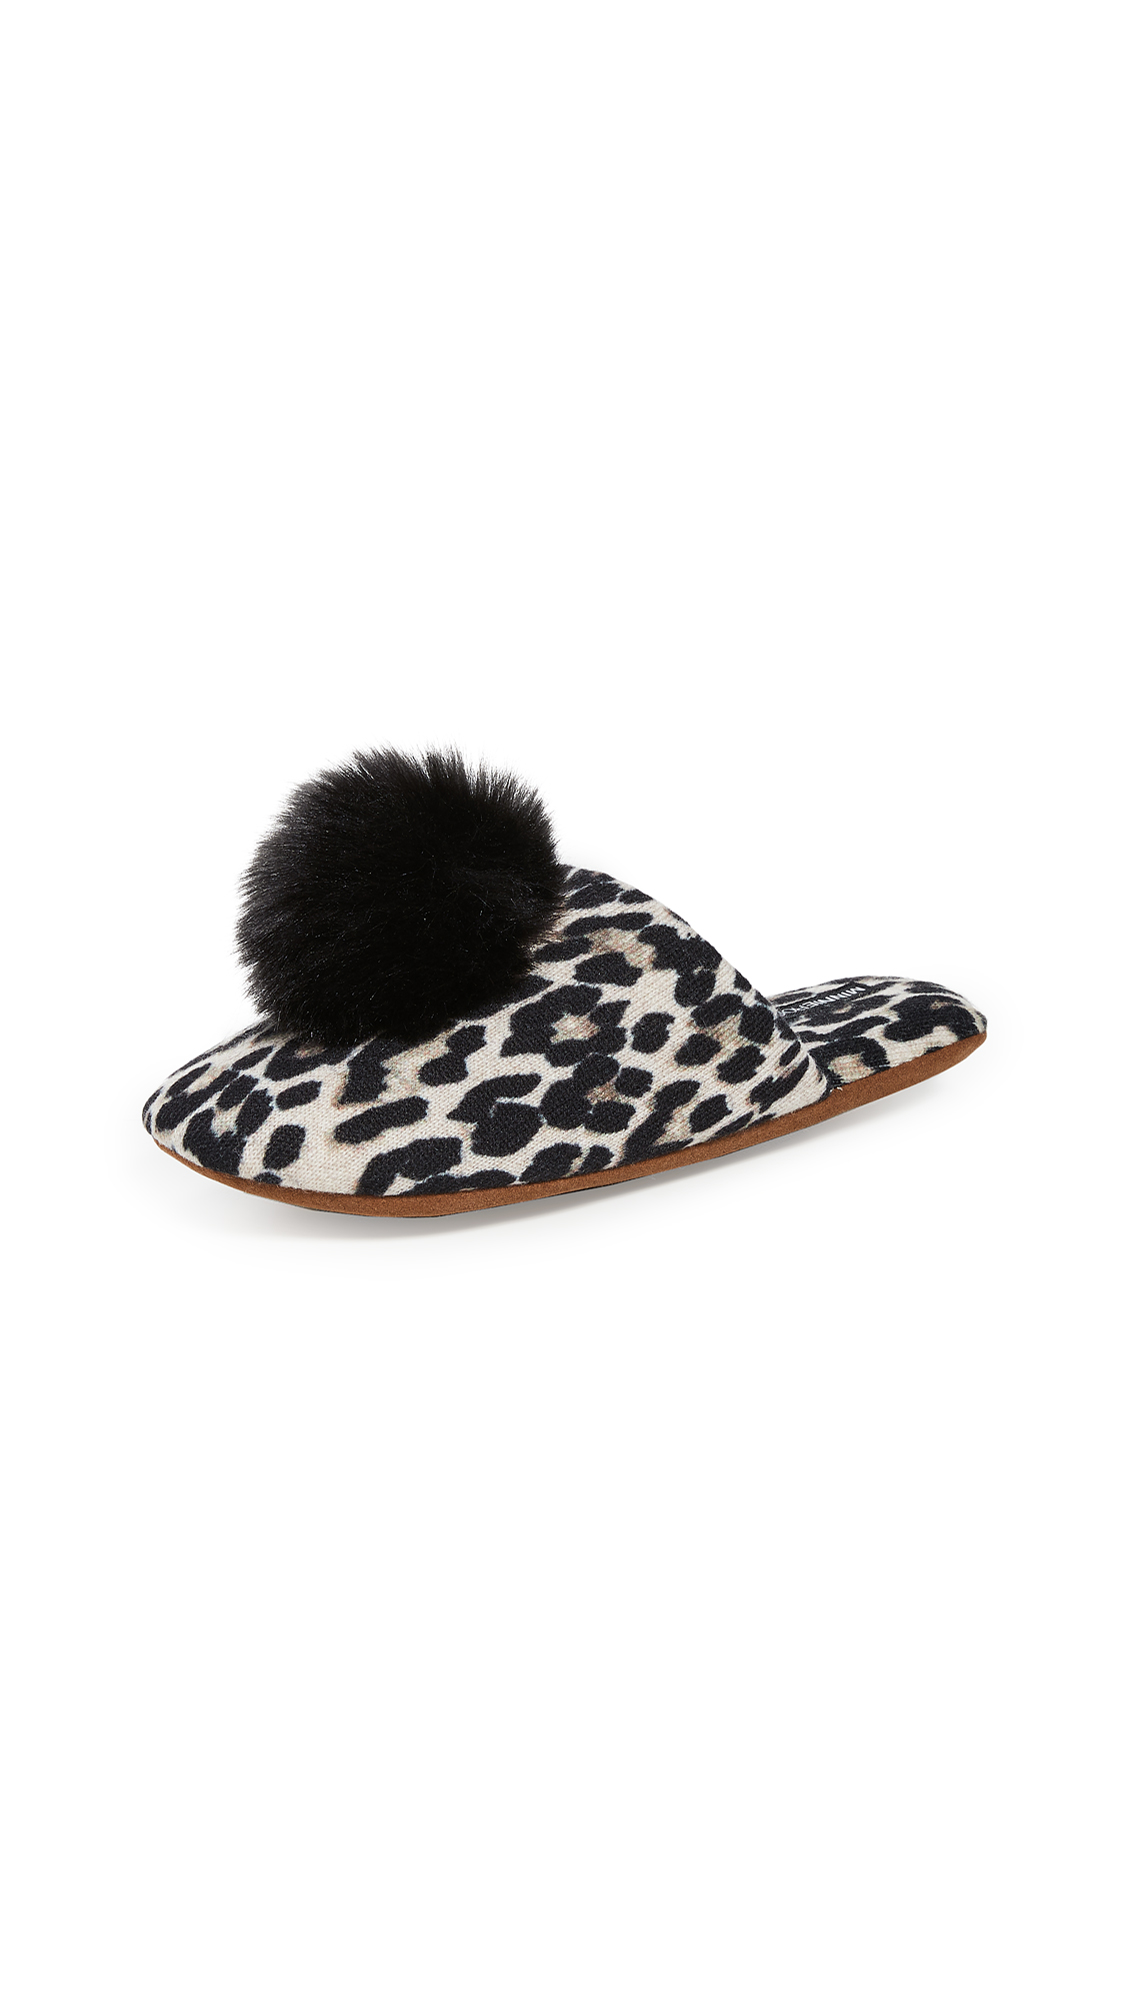 Buy Minnie Rose Cashmere Leopard Pom Pom Slippers online, shop Minnie Rose